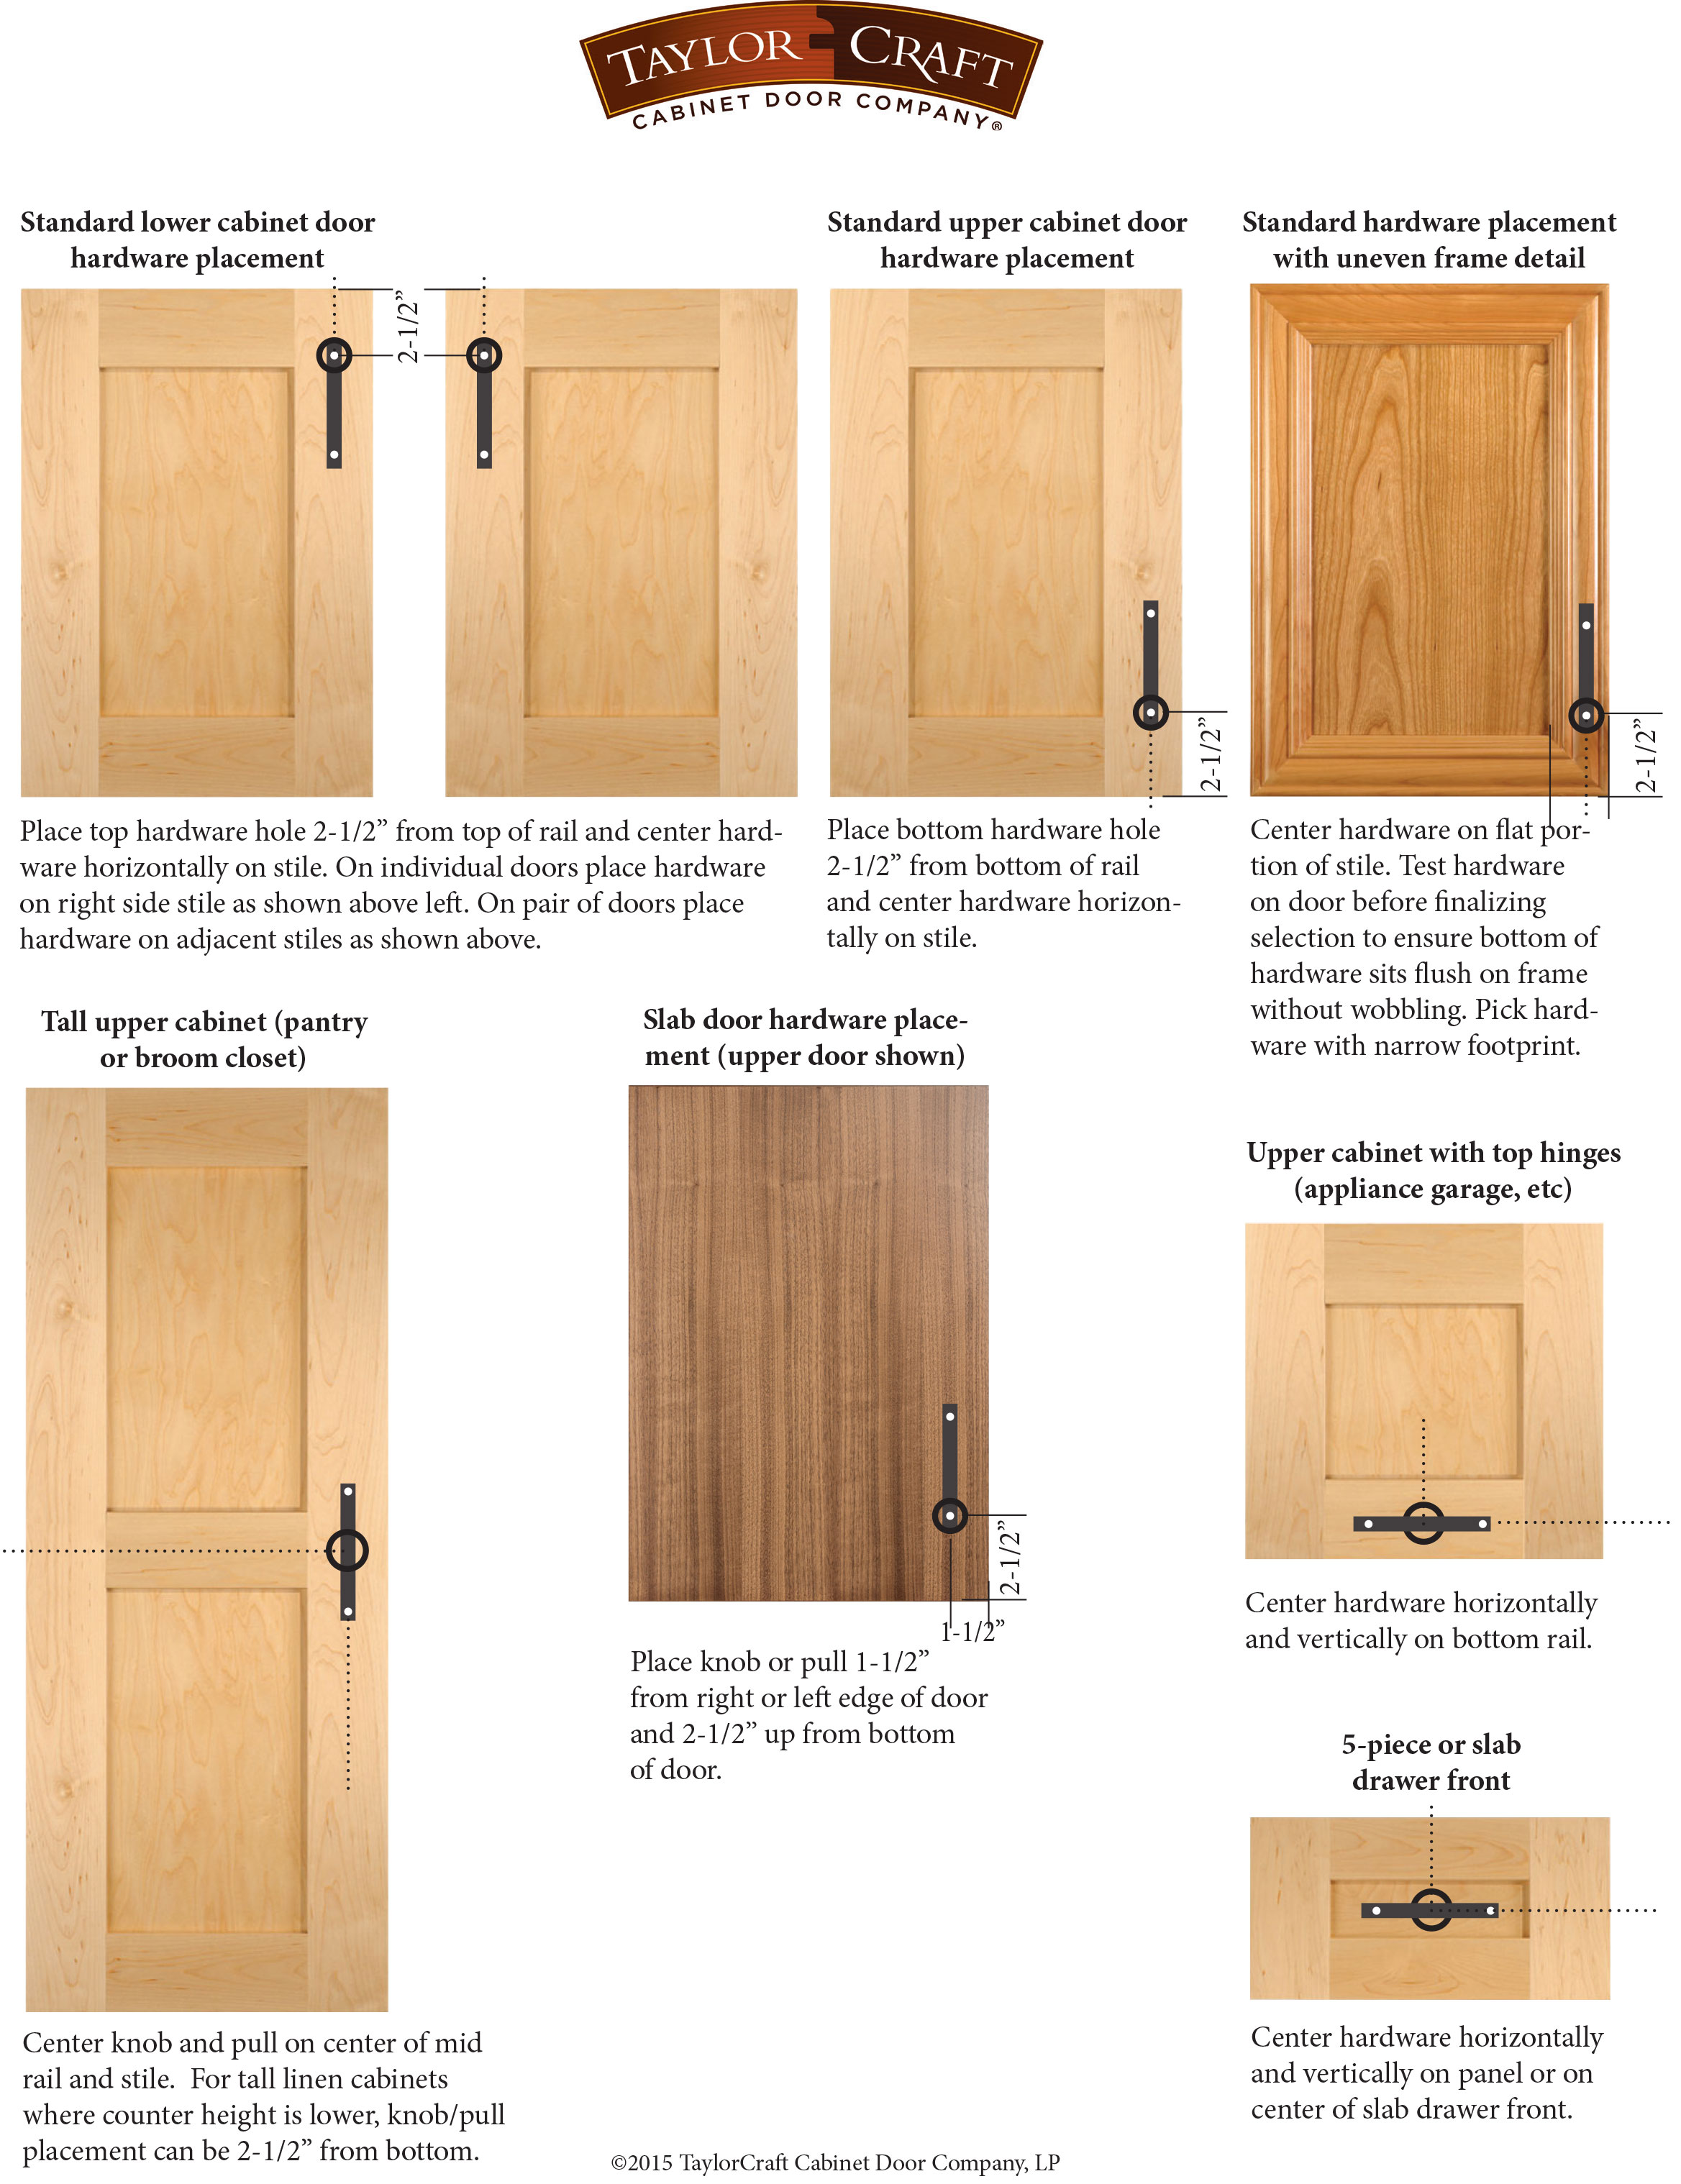 cabinet door hardware placement guidelines taylorcraft cabinet rh taylorcraftdoor com door and cabinet hardware near me door and cabinet hardware online